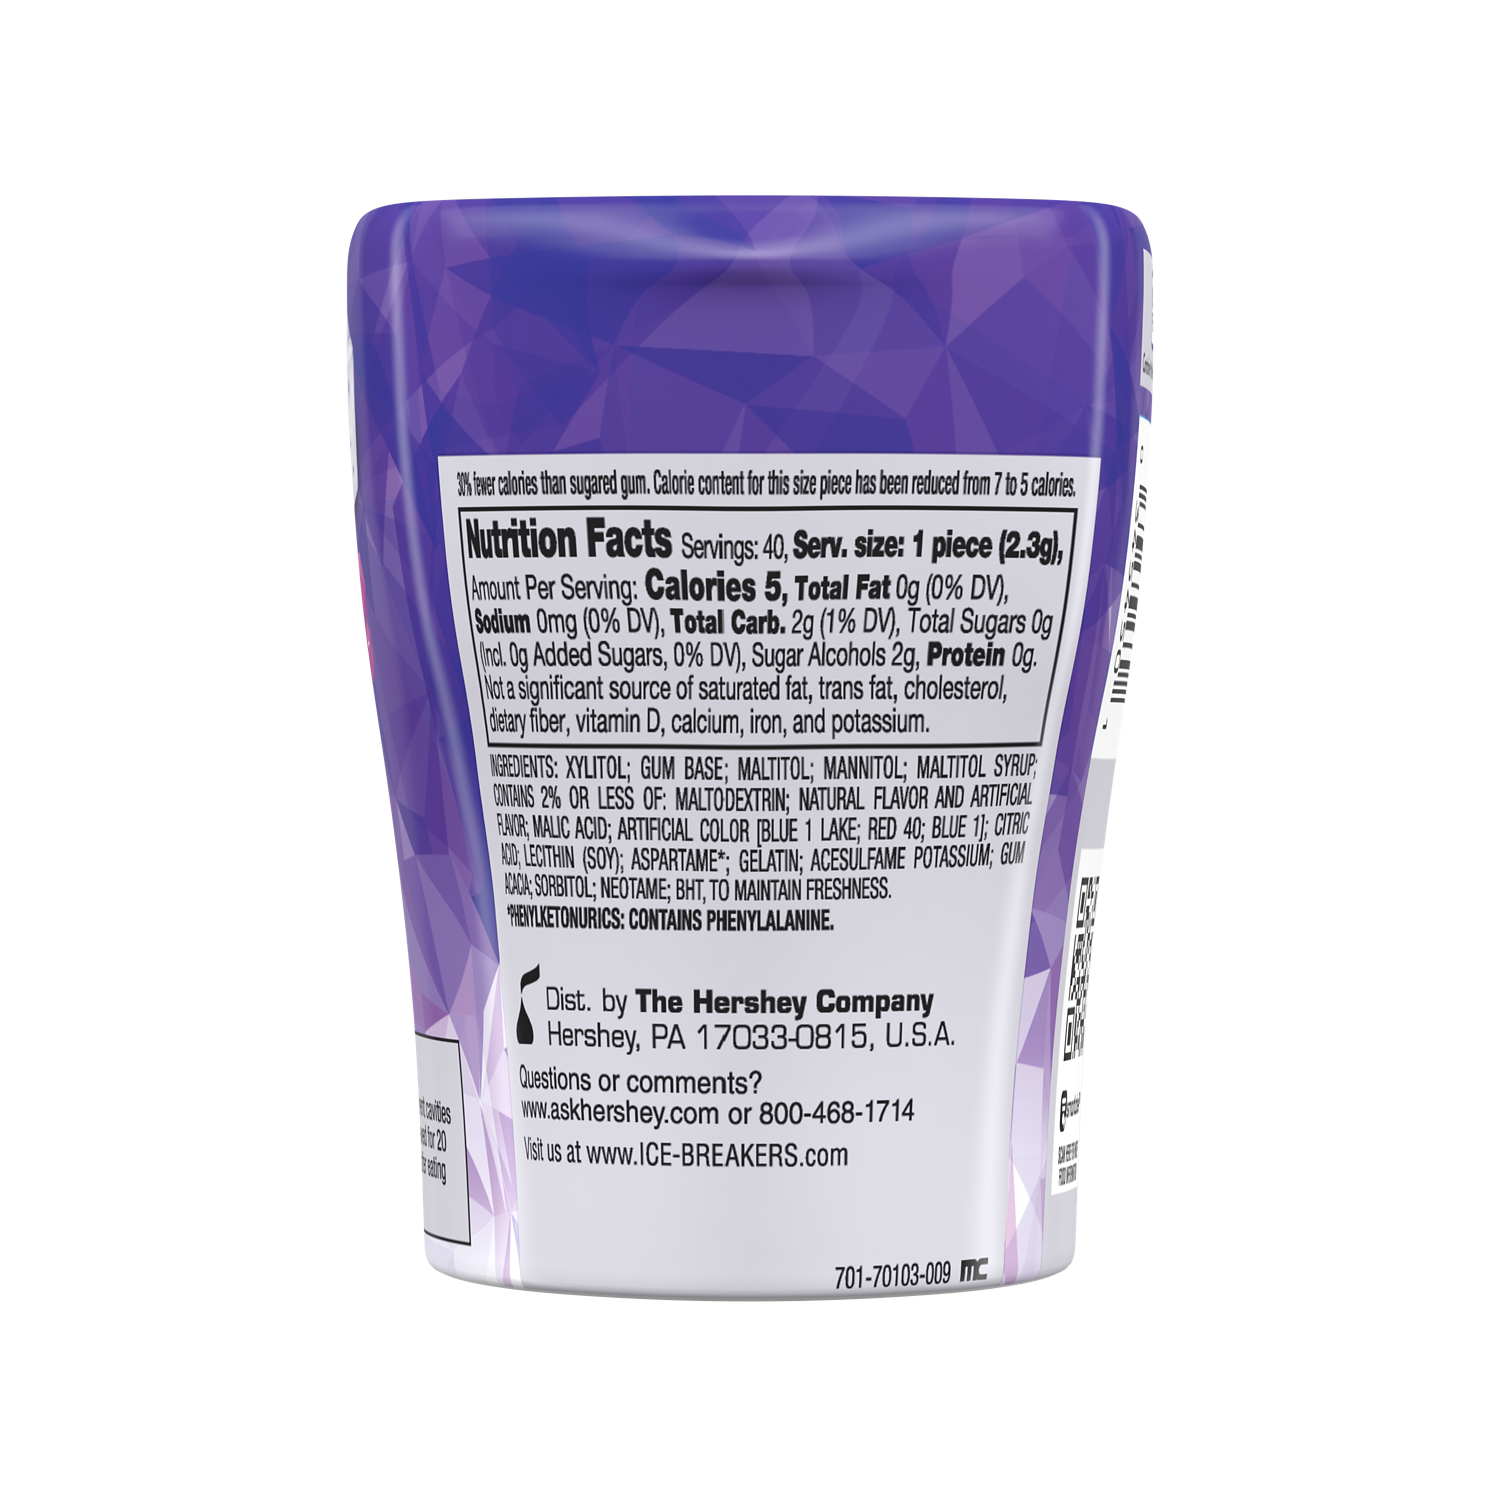 ICE BREAKERS ICE CUBES ARCTIC GRAPE Sugar Free Gum, 3.24 oz bottle, 40 pieces - Back of Package